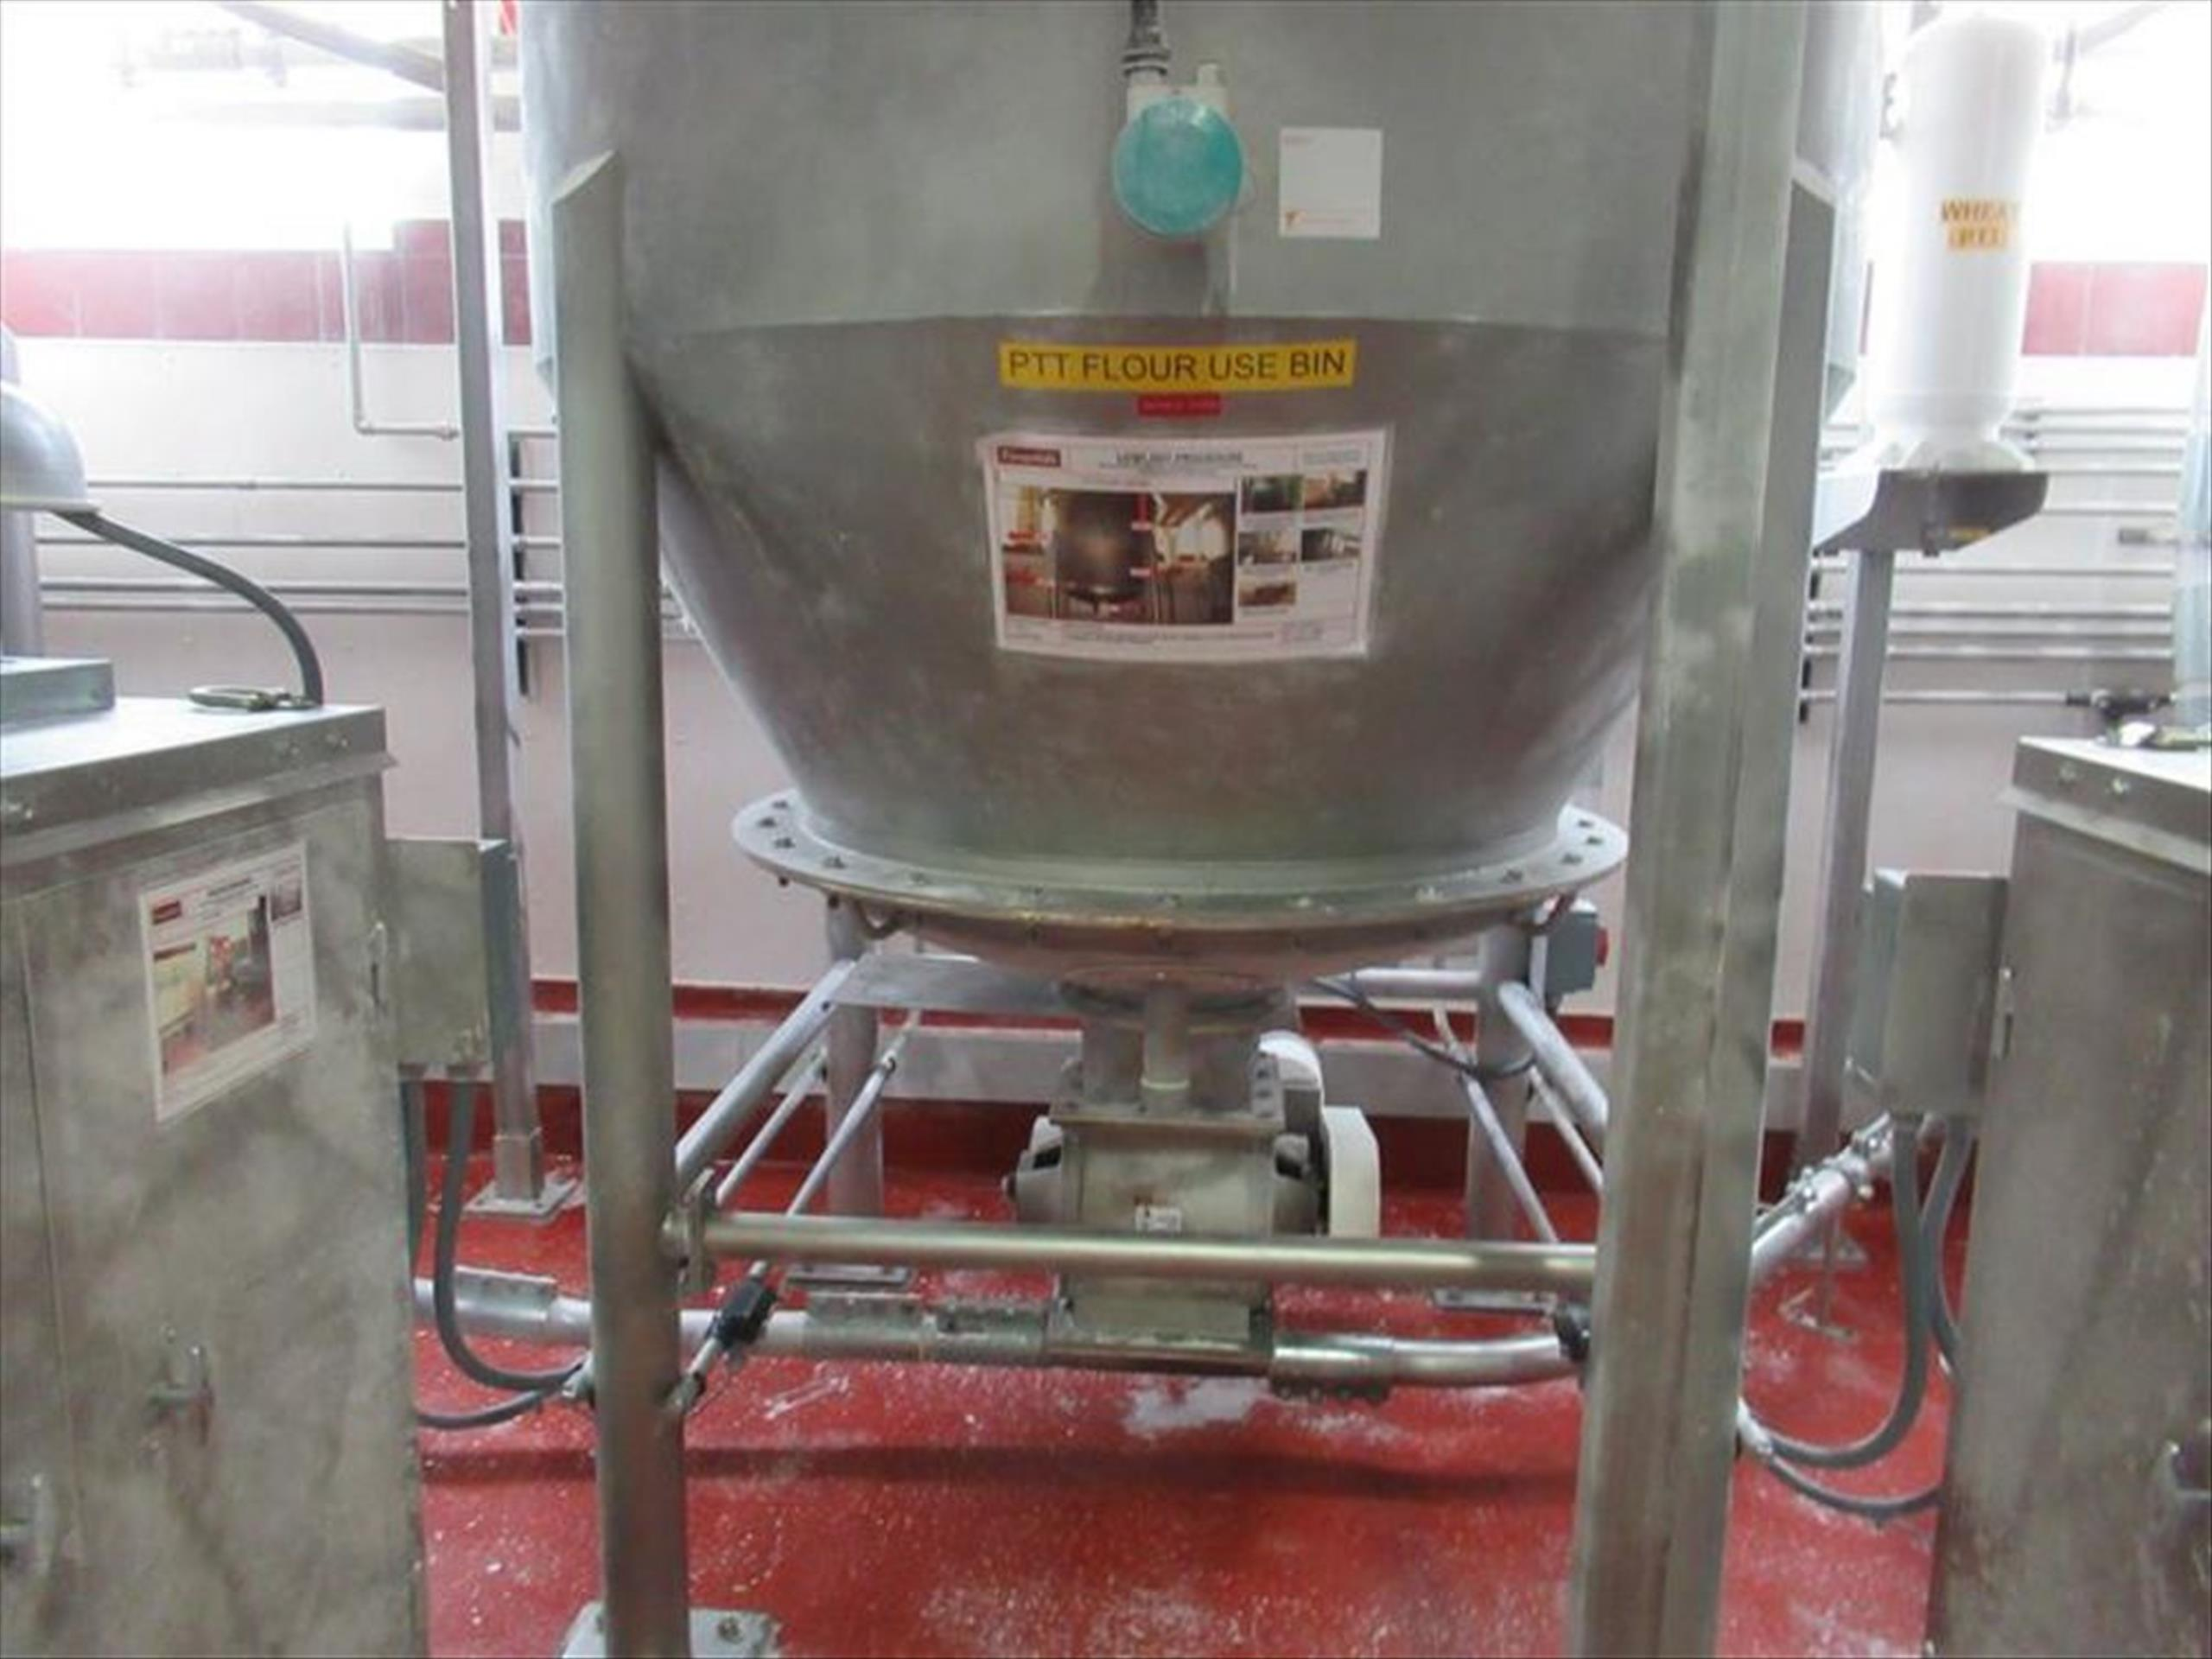 Schick pit flour receiver approx 6 ft dia x 10 ft h straight x 30 in cone bottom, cone top, with - Image 2 of 2